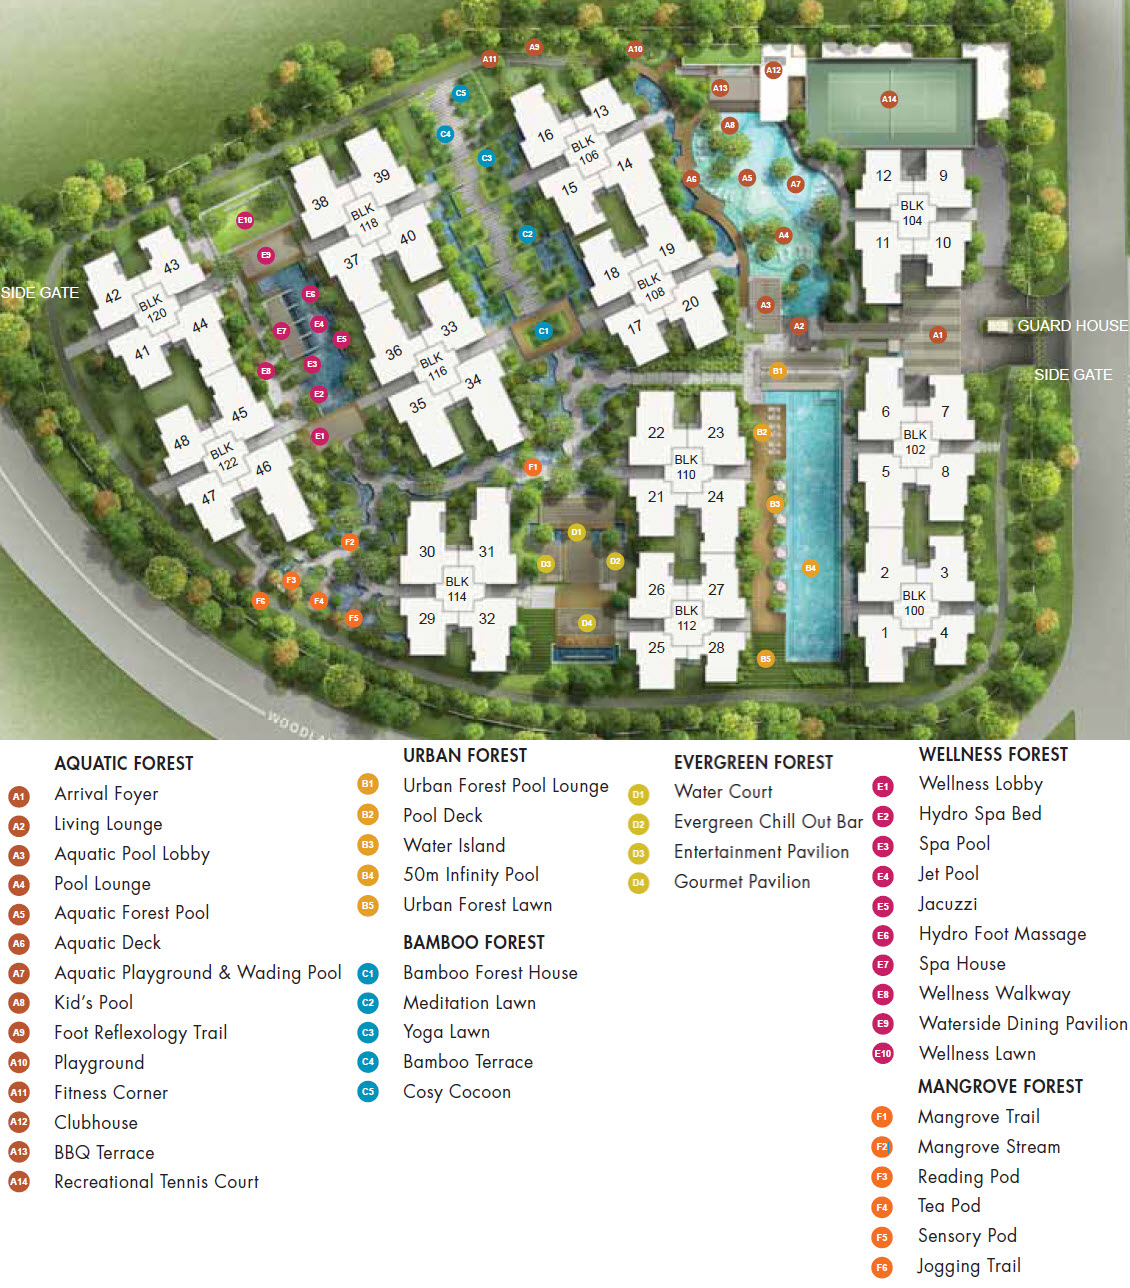 Bellewoods EC Facilities Plan